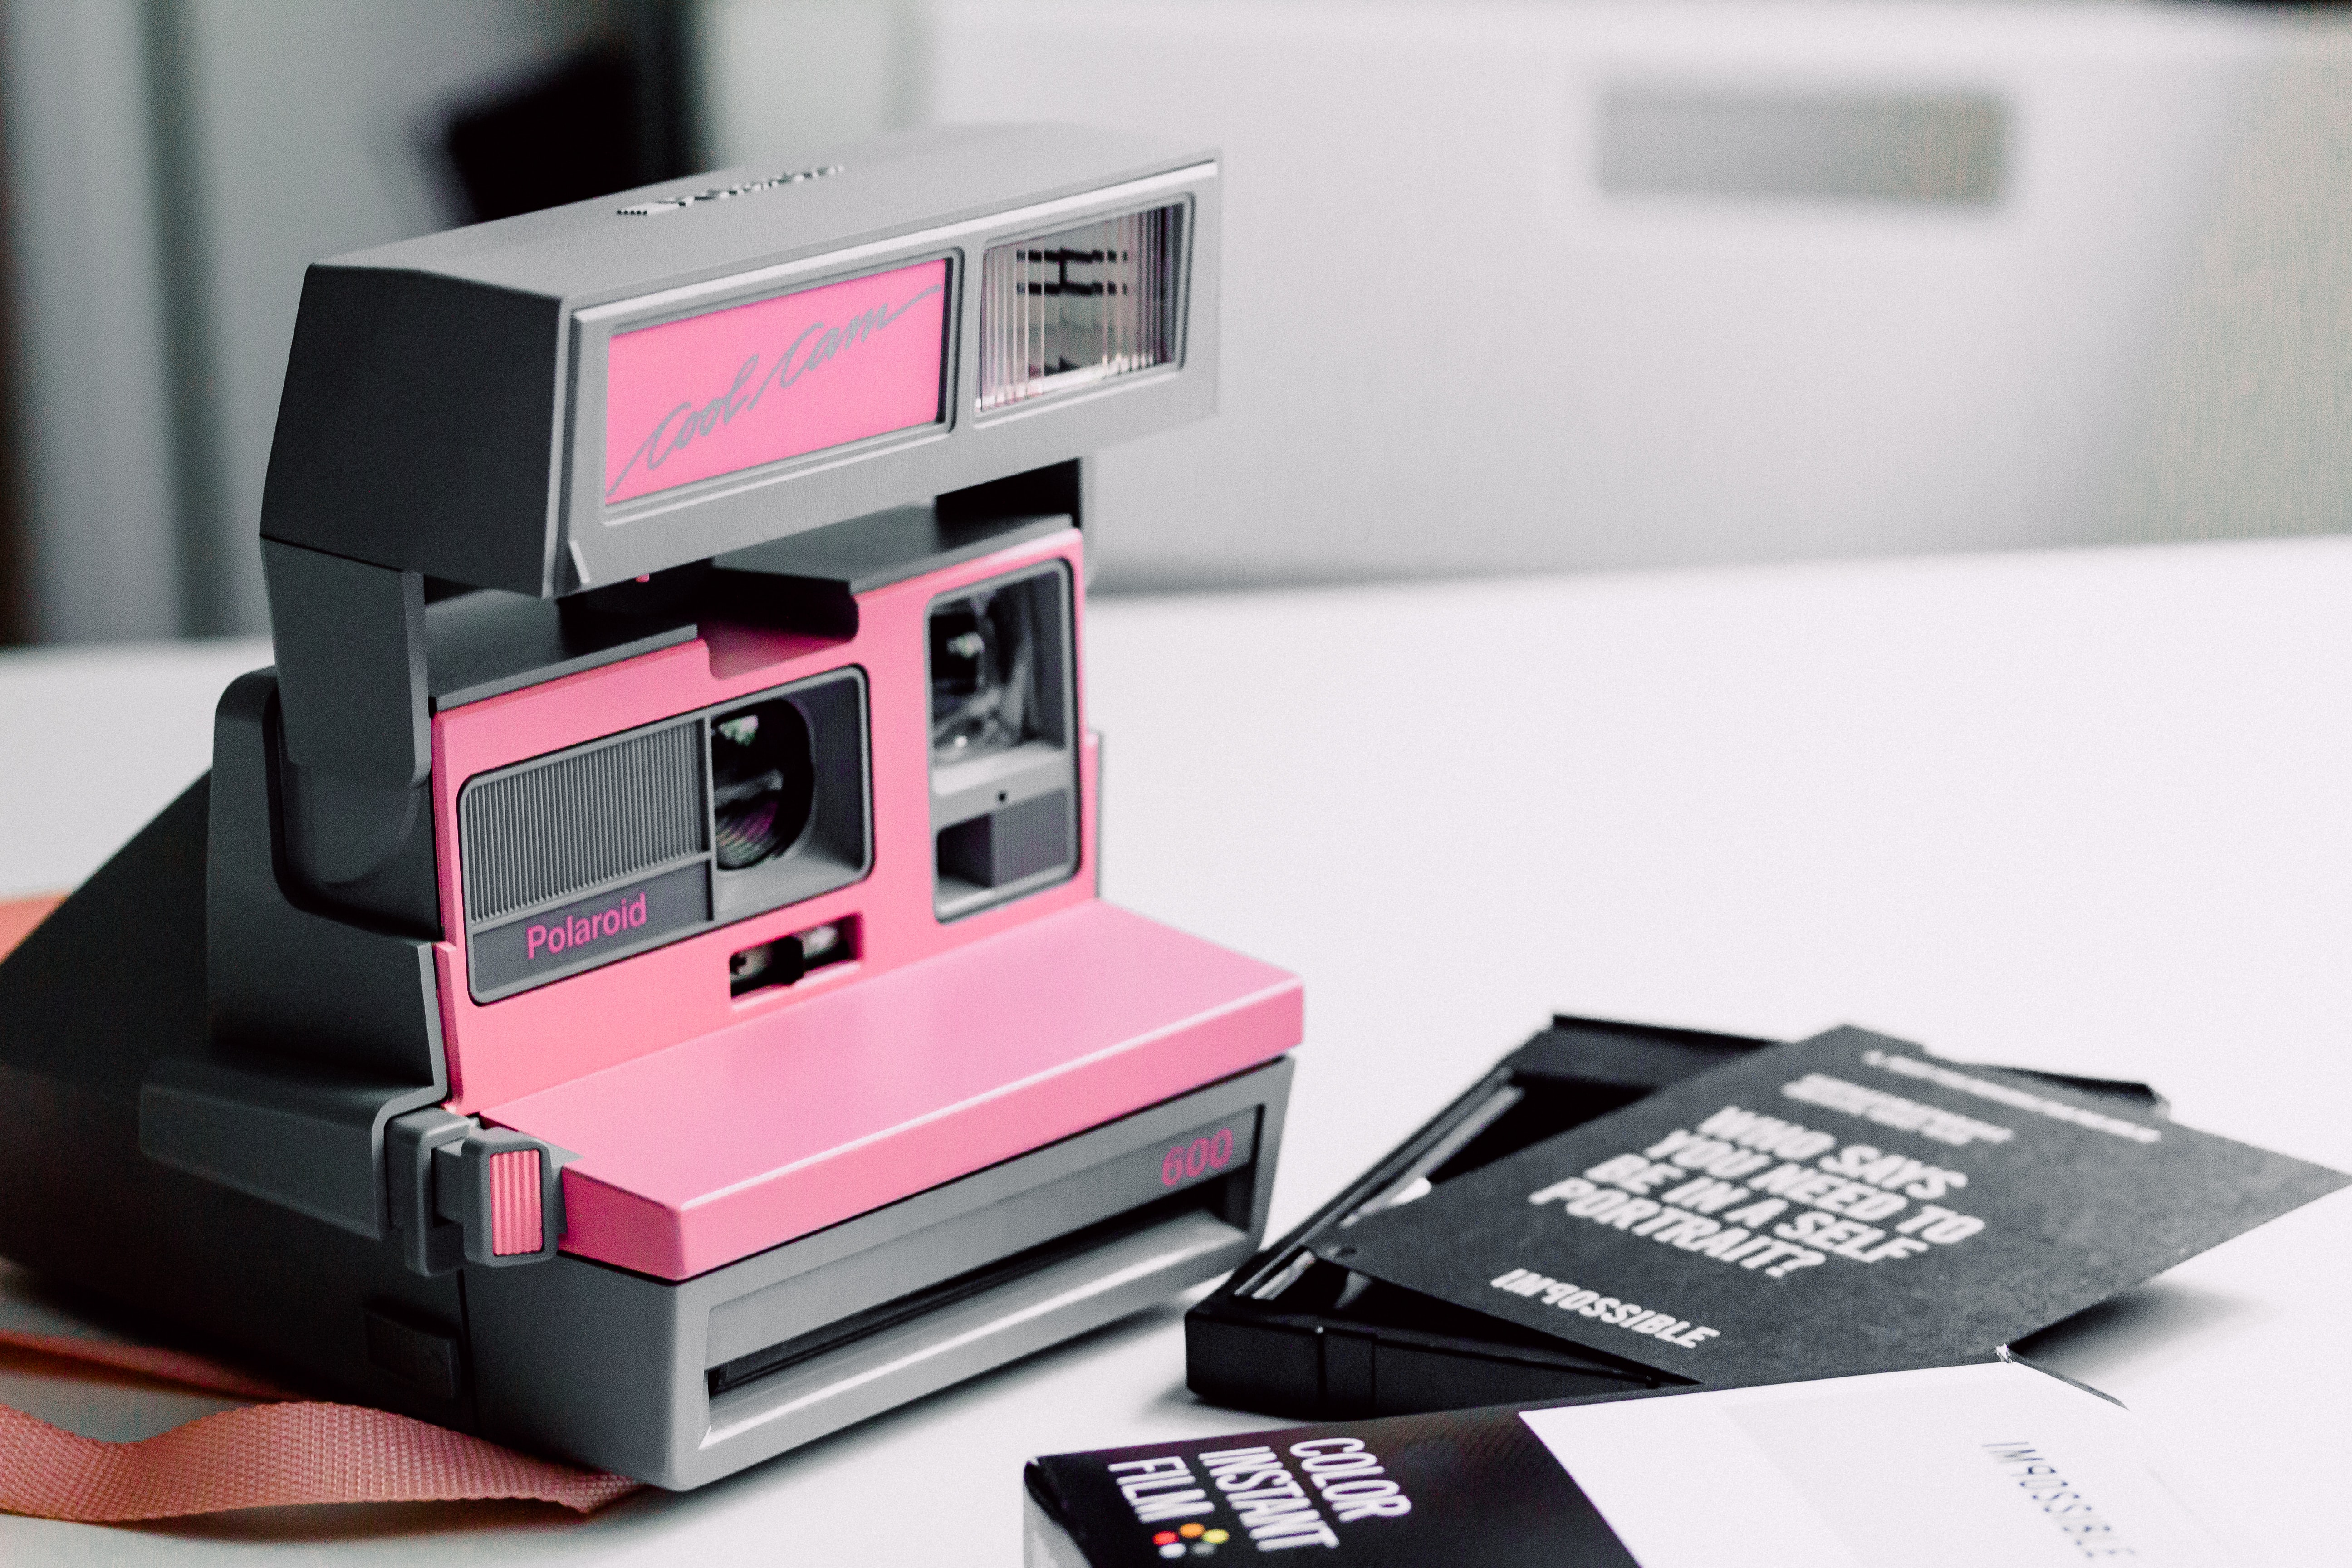 A pink Polaroid camera on a white surface